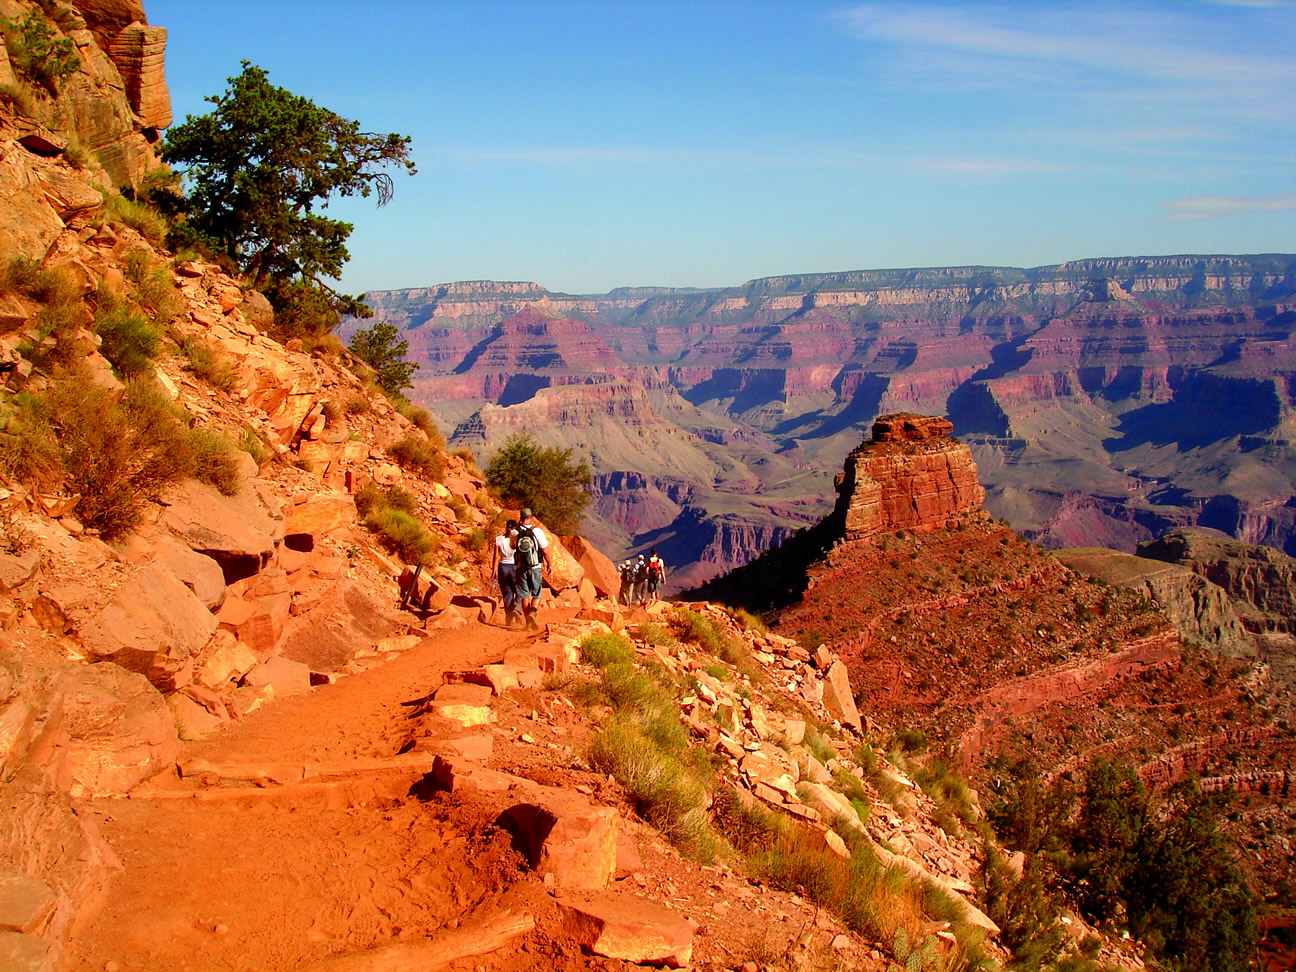 Family adventures - experience the Grand Canyon